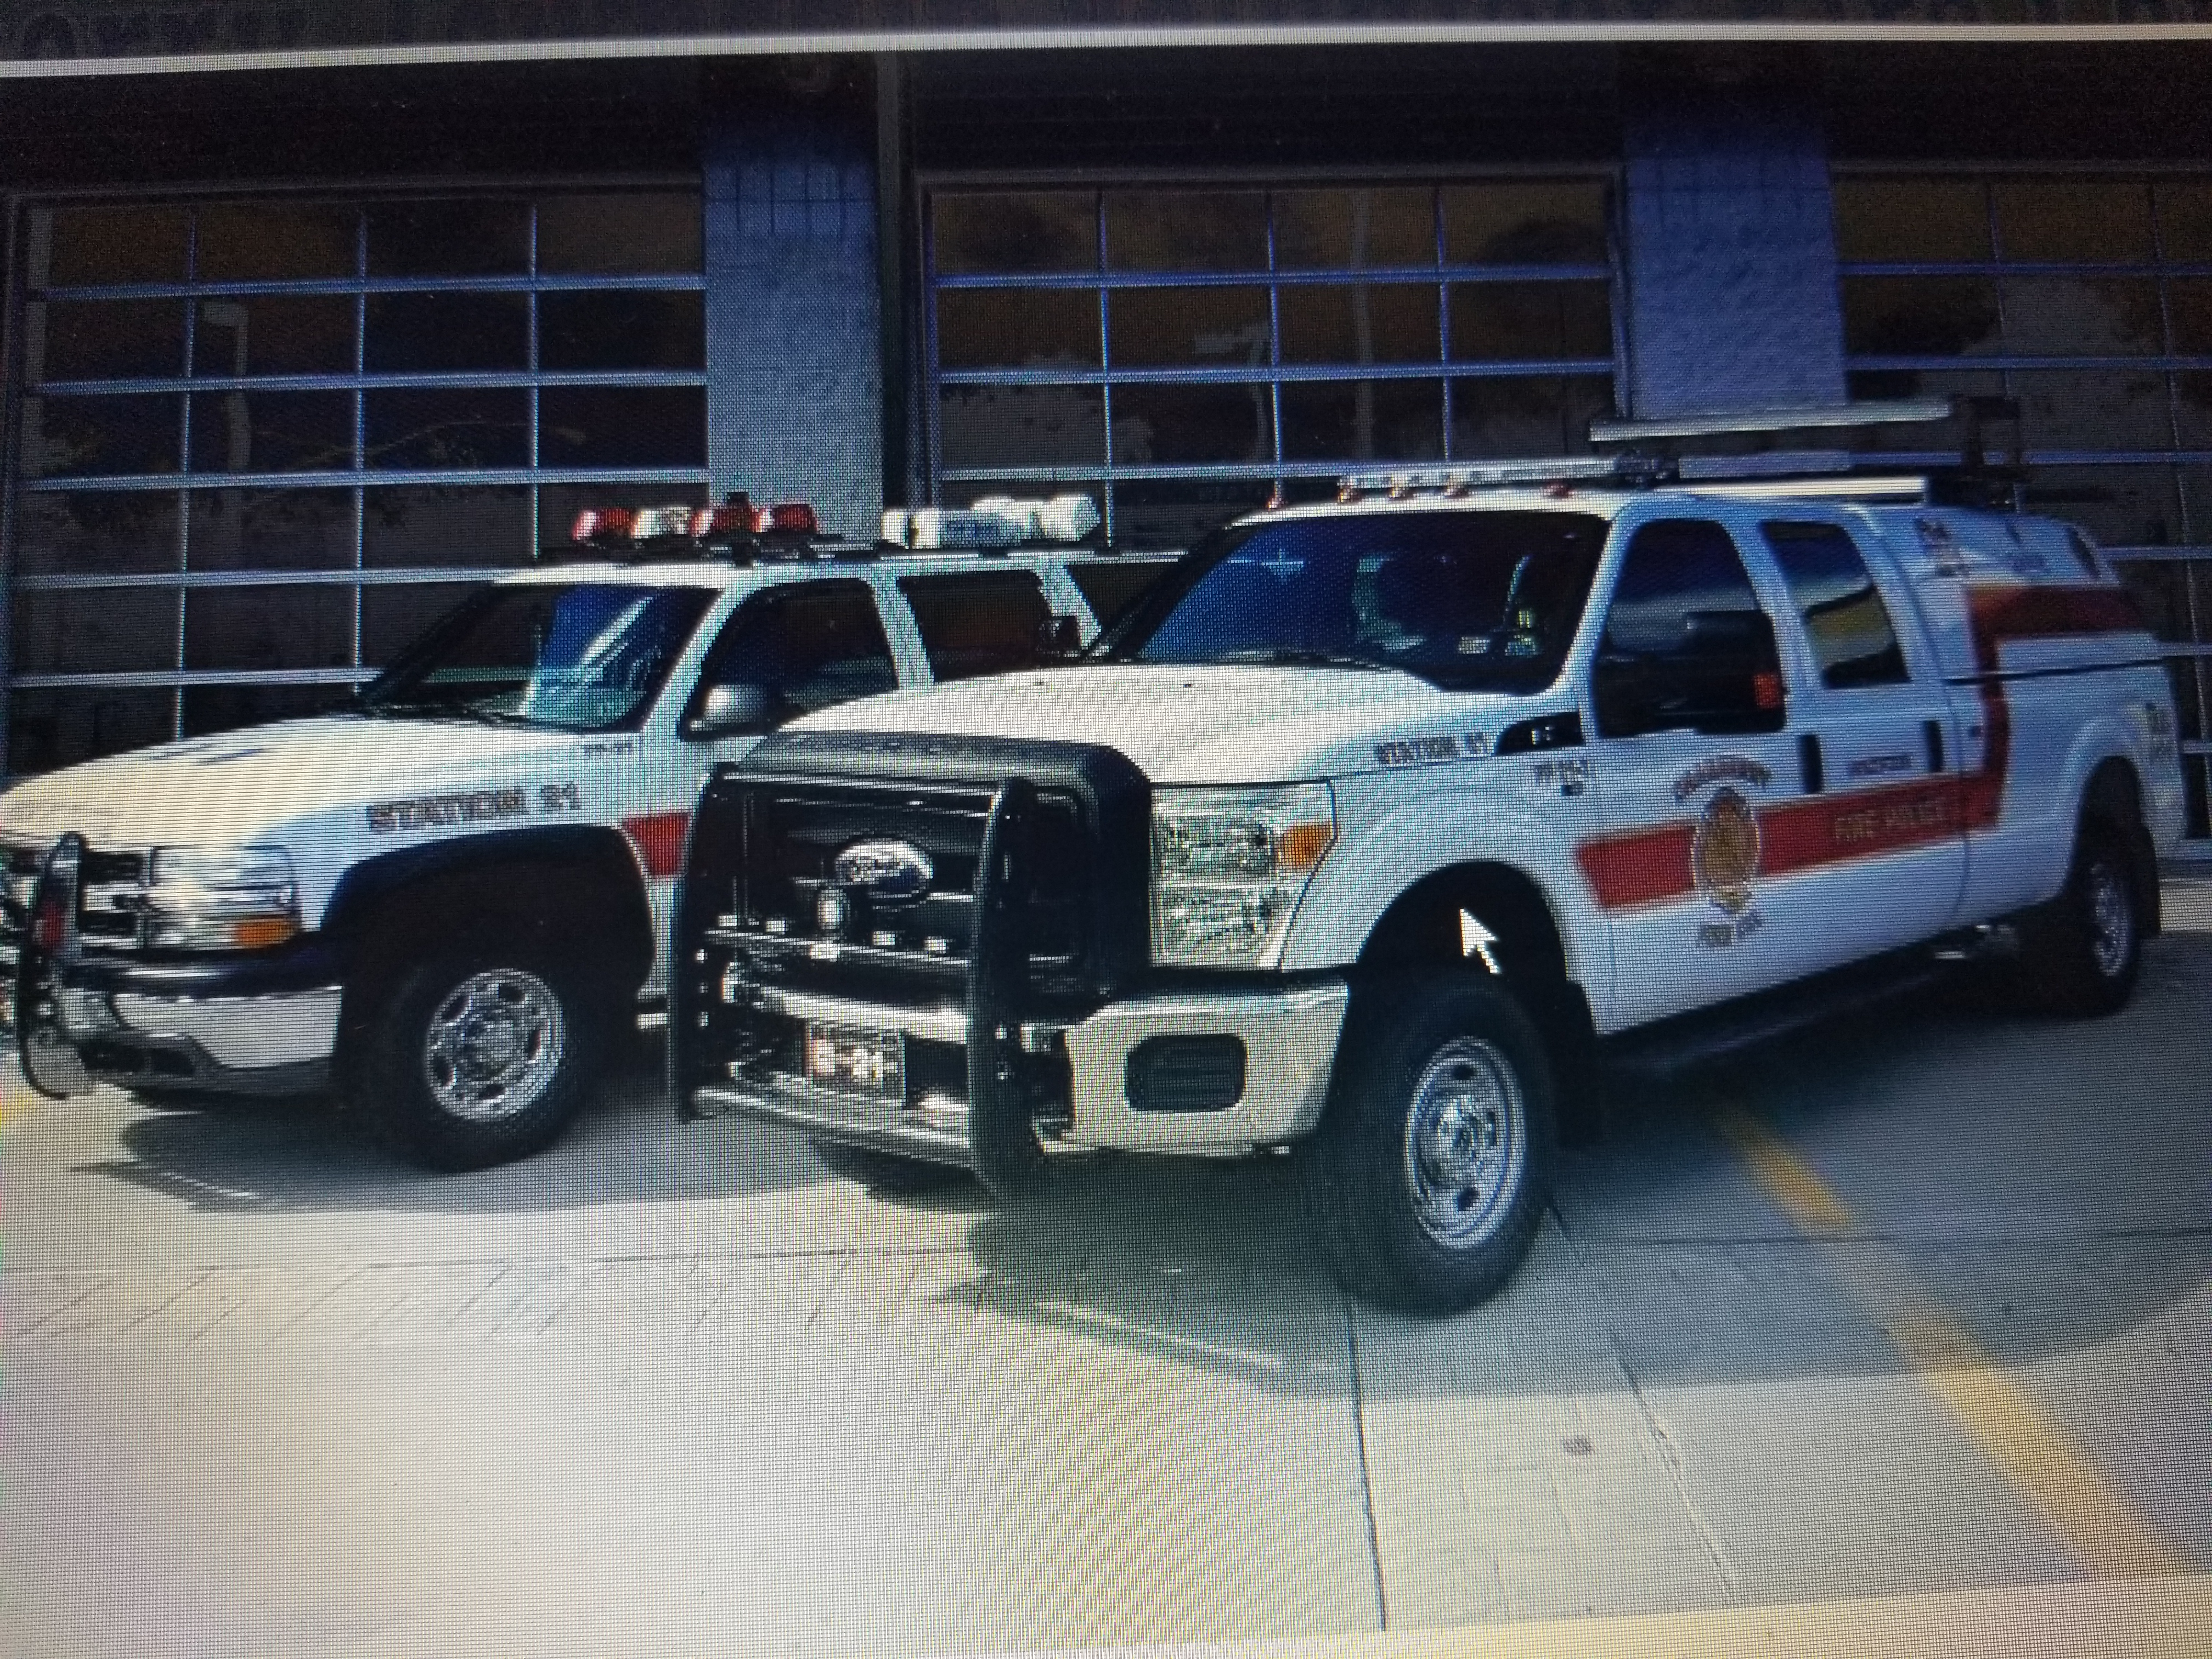 Cranberry Township Volunteer Fire Company Fire Police 21 -2001 Chevy Suburban. Fire Police 21-2 2012